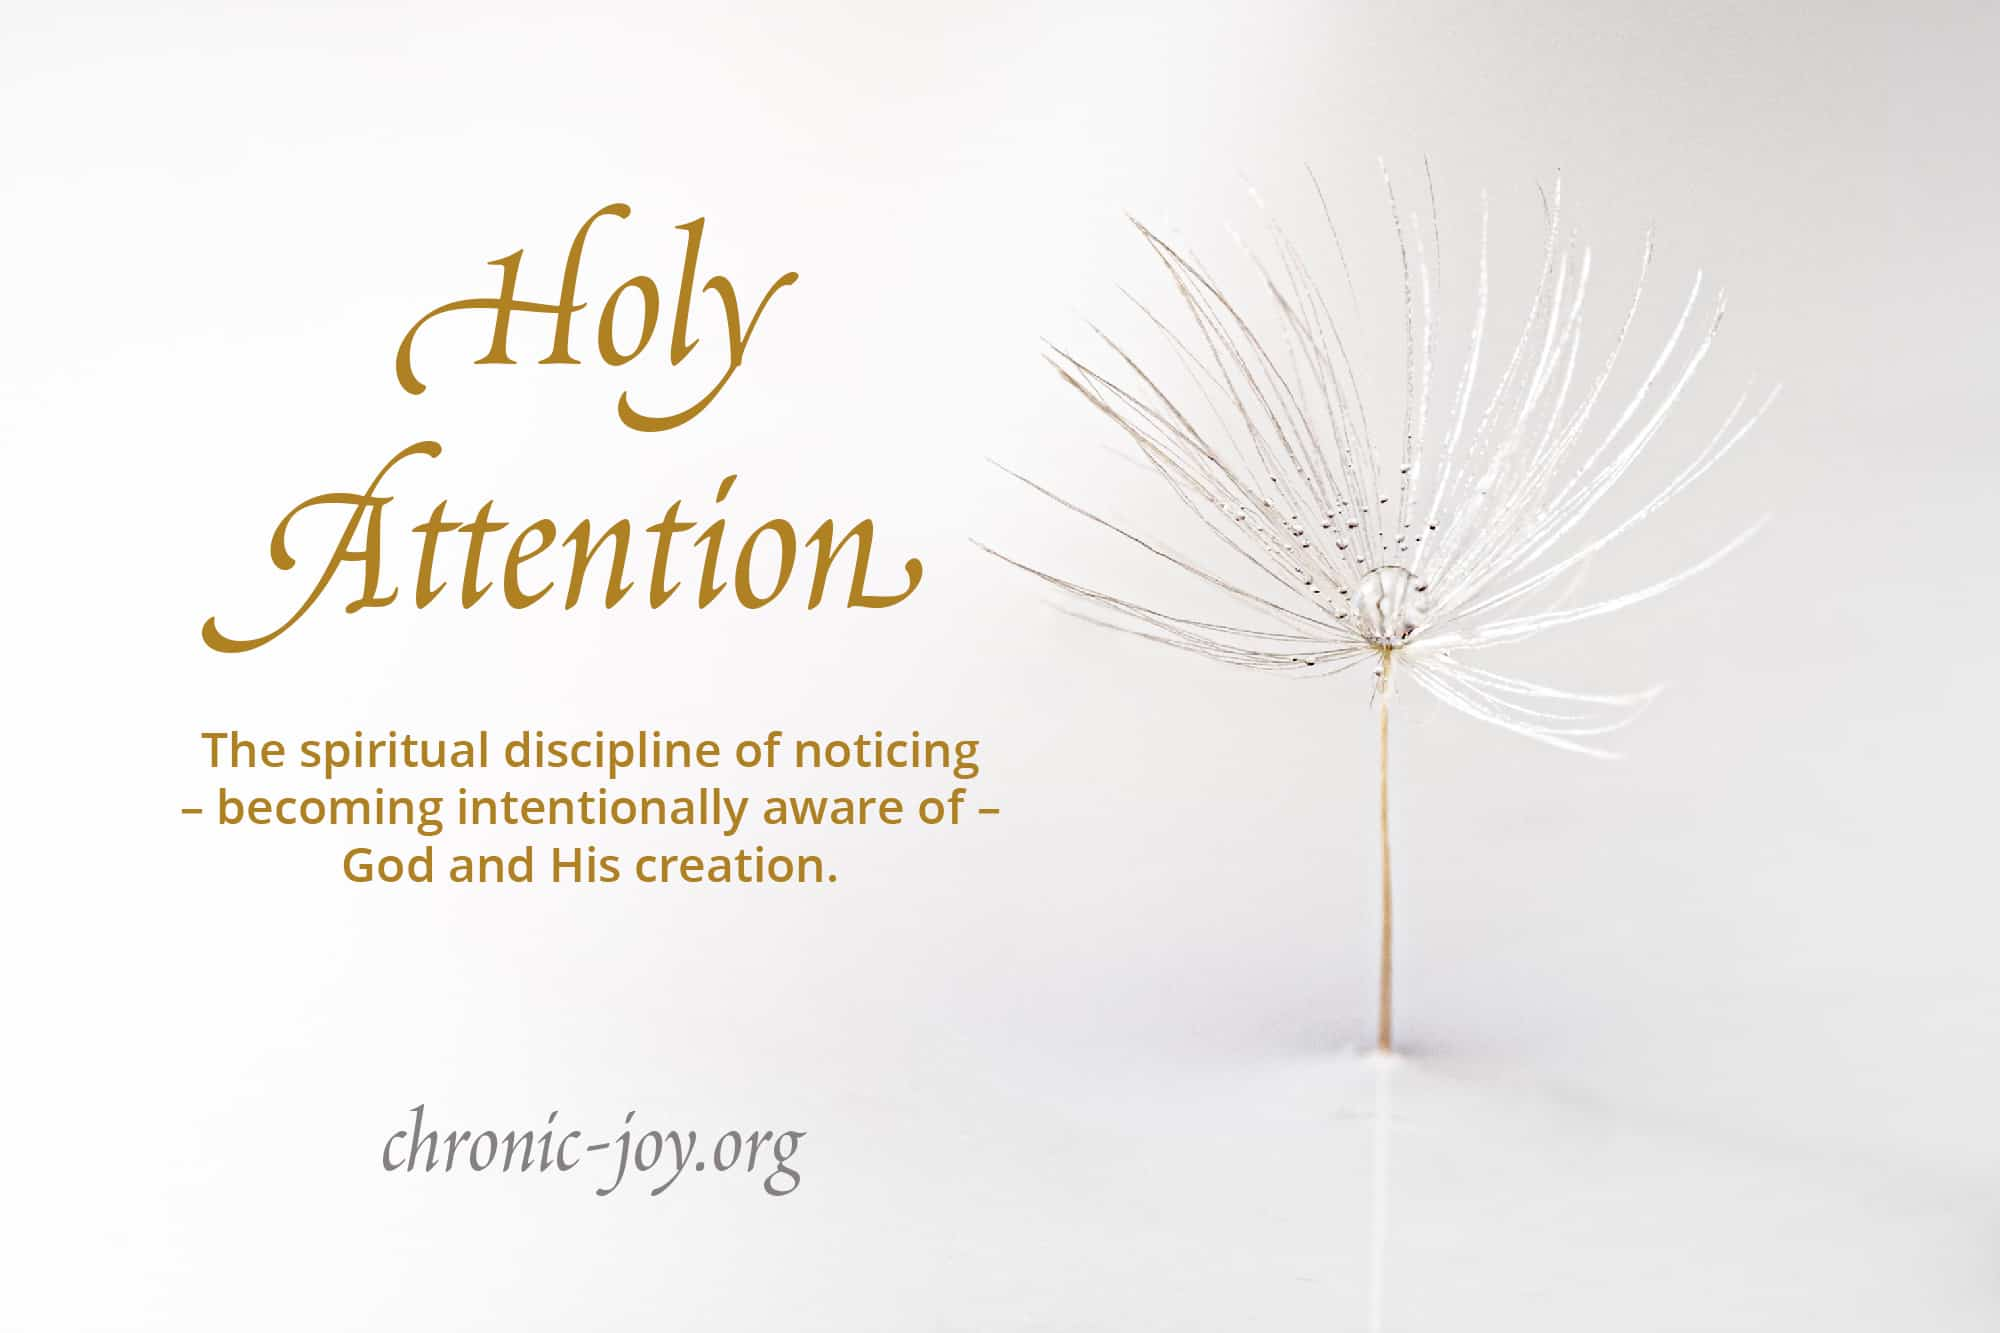 Holy Attention •The spiritual discipline of noticing - becoming intentionally aware - of God and His creation.